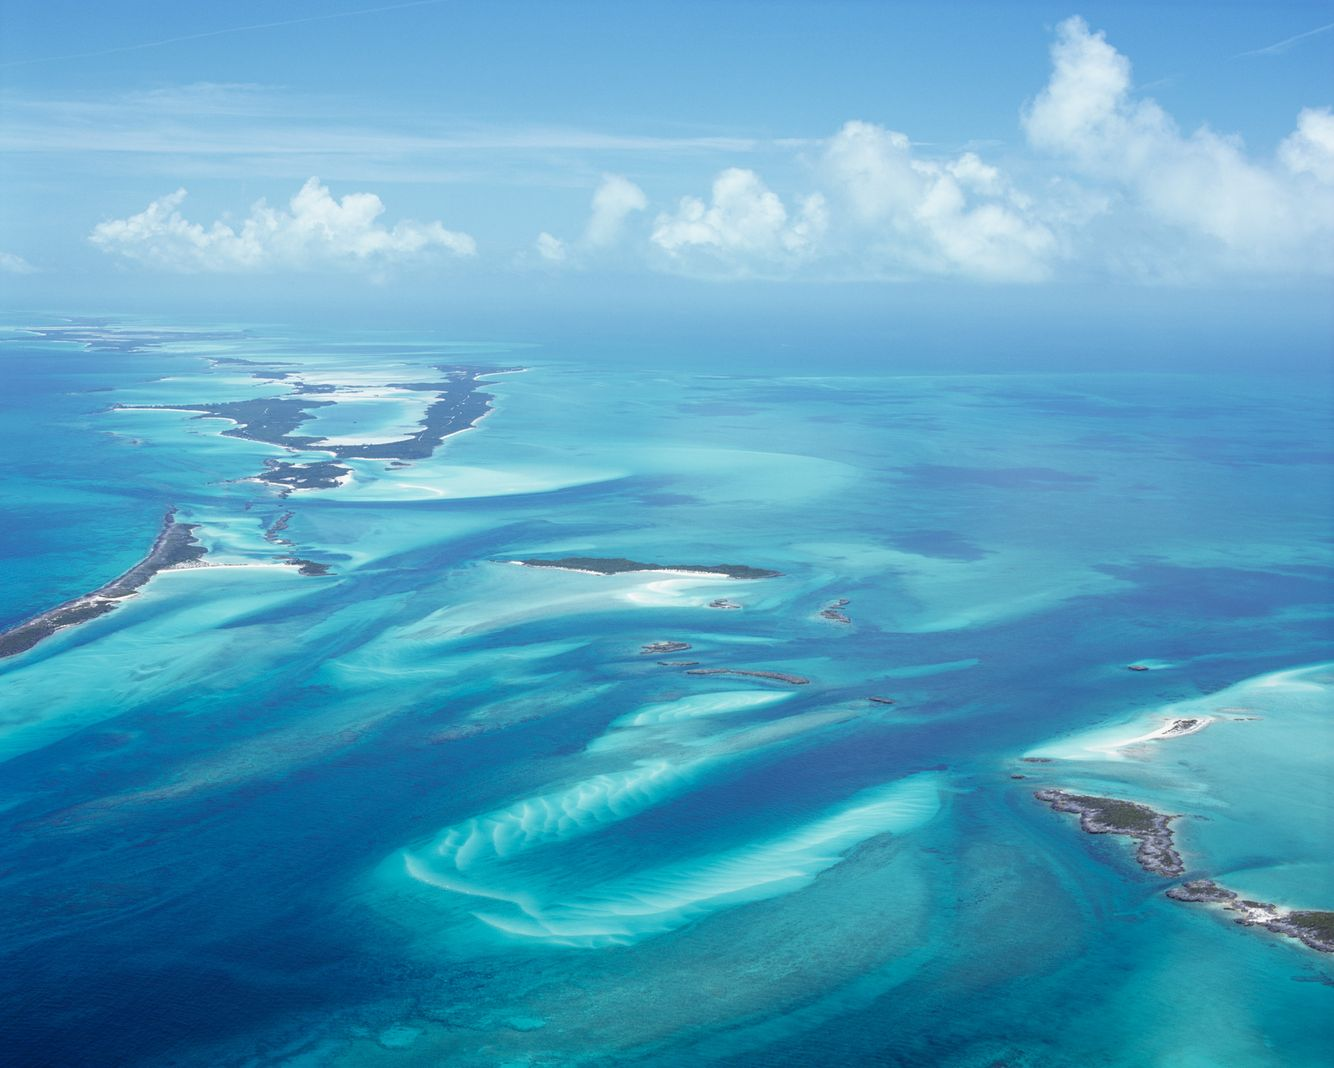 Aerial View of the Exhumas